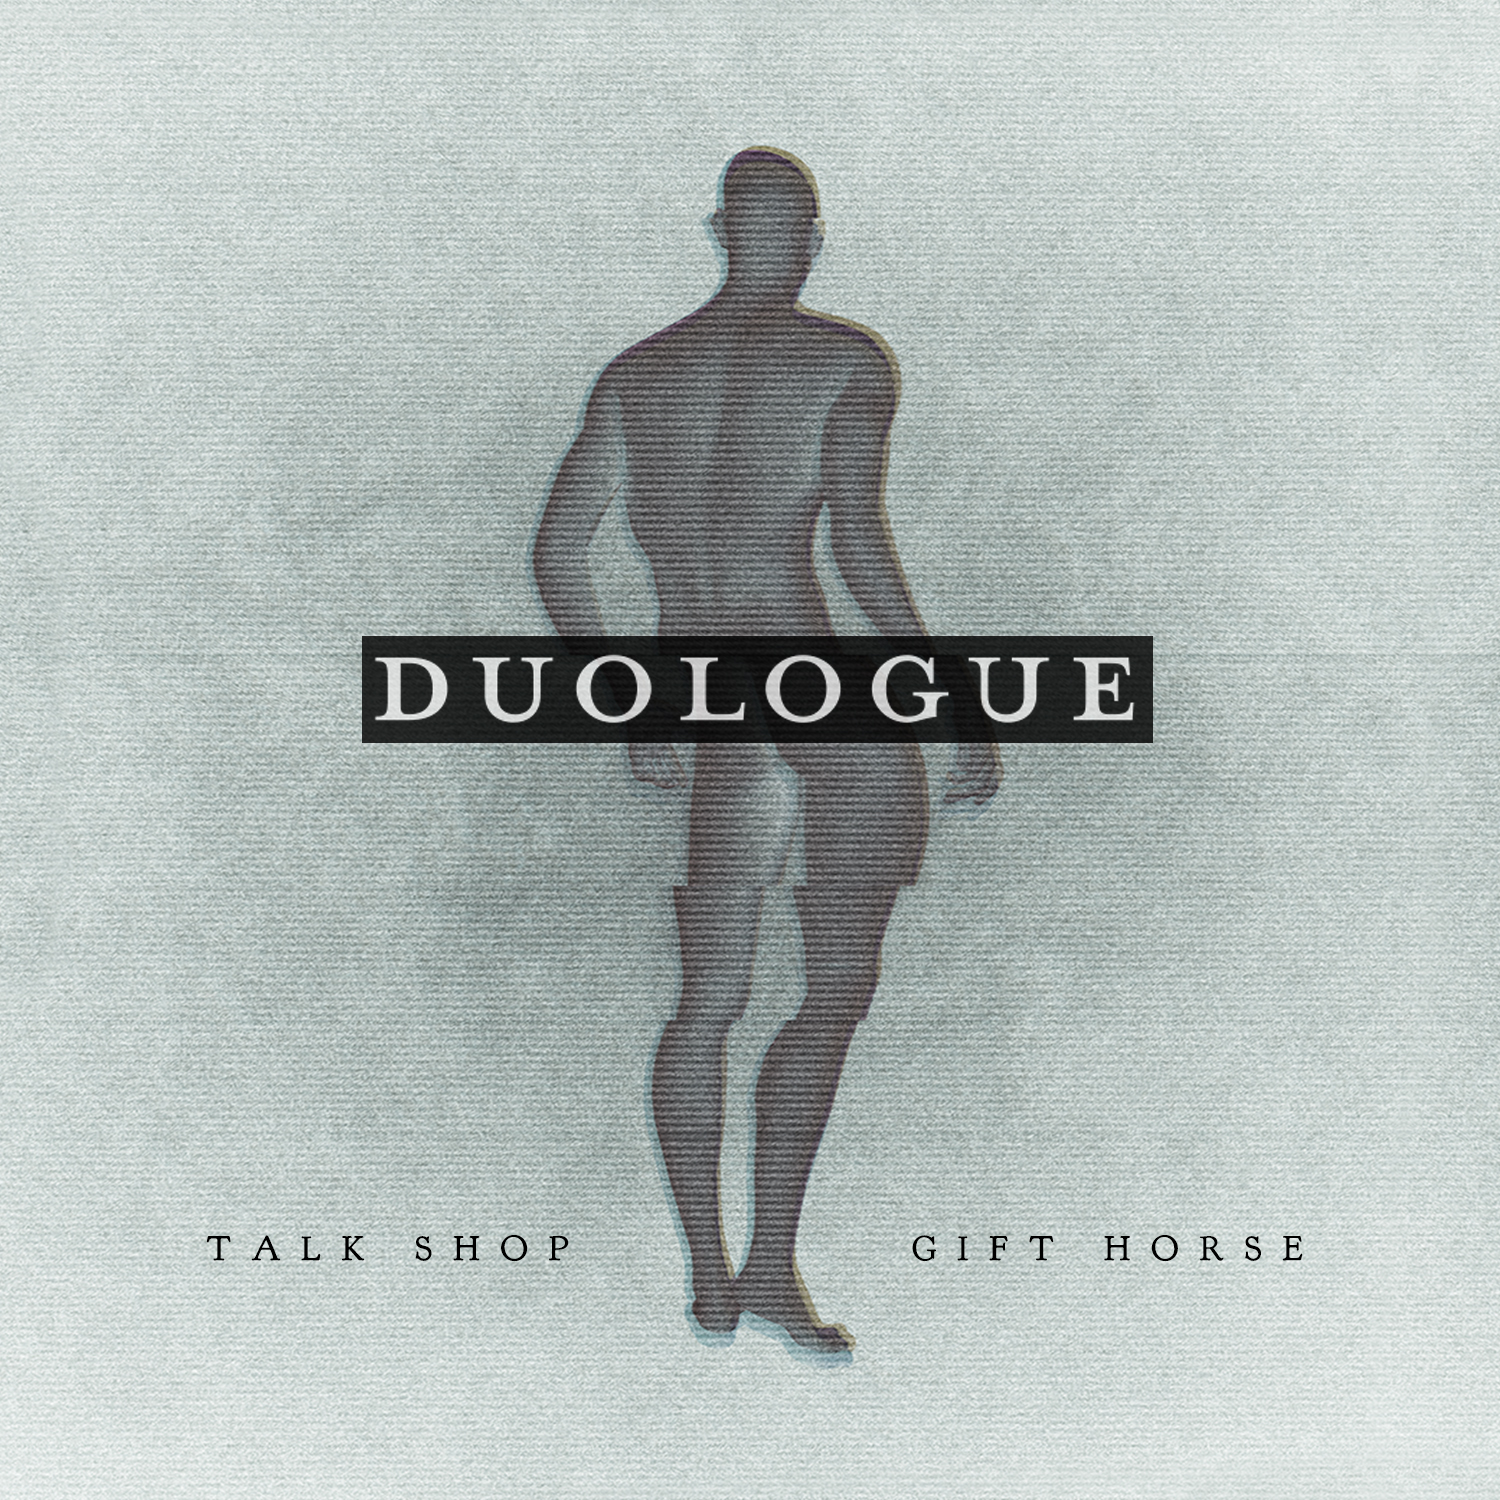 Duologue_Talk Shop Gift Horse_Packshot